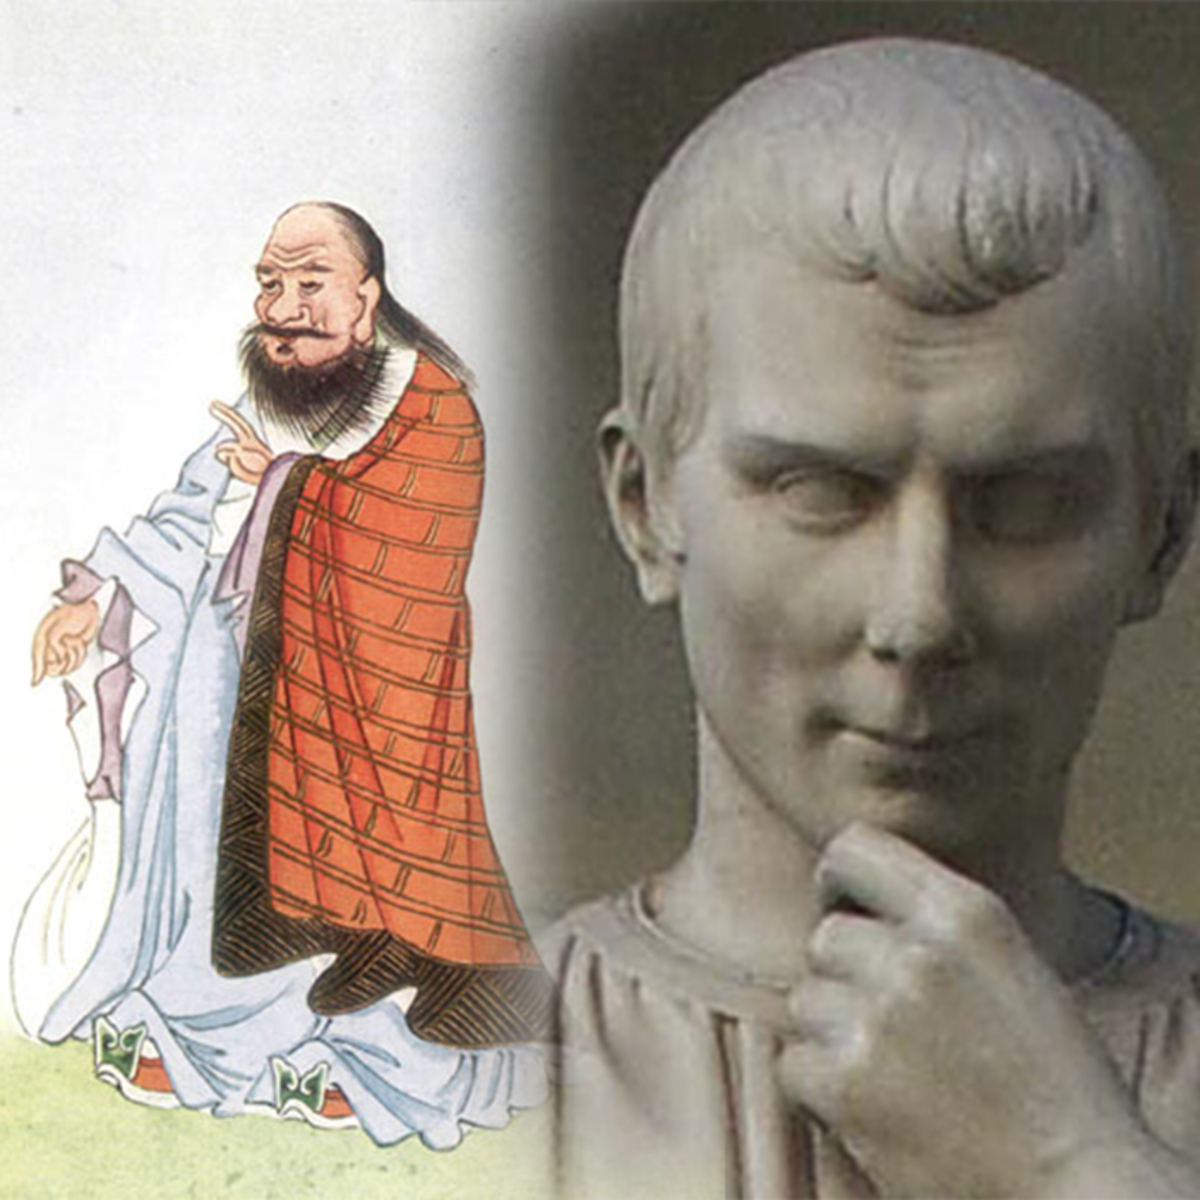 Lao-Tzu and Machiavelli had very different ideas on what qualities make a great leader.